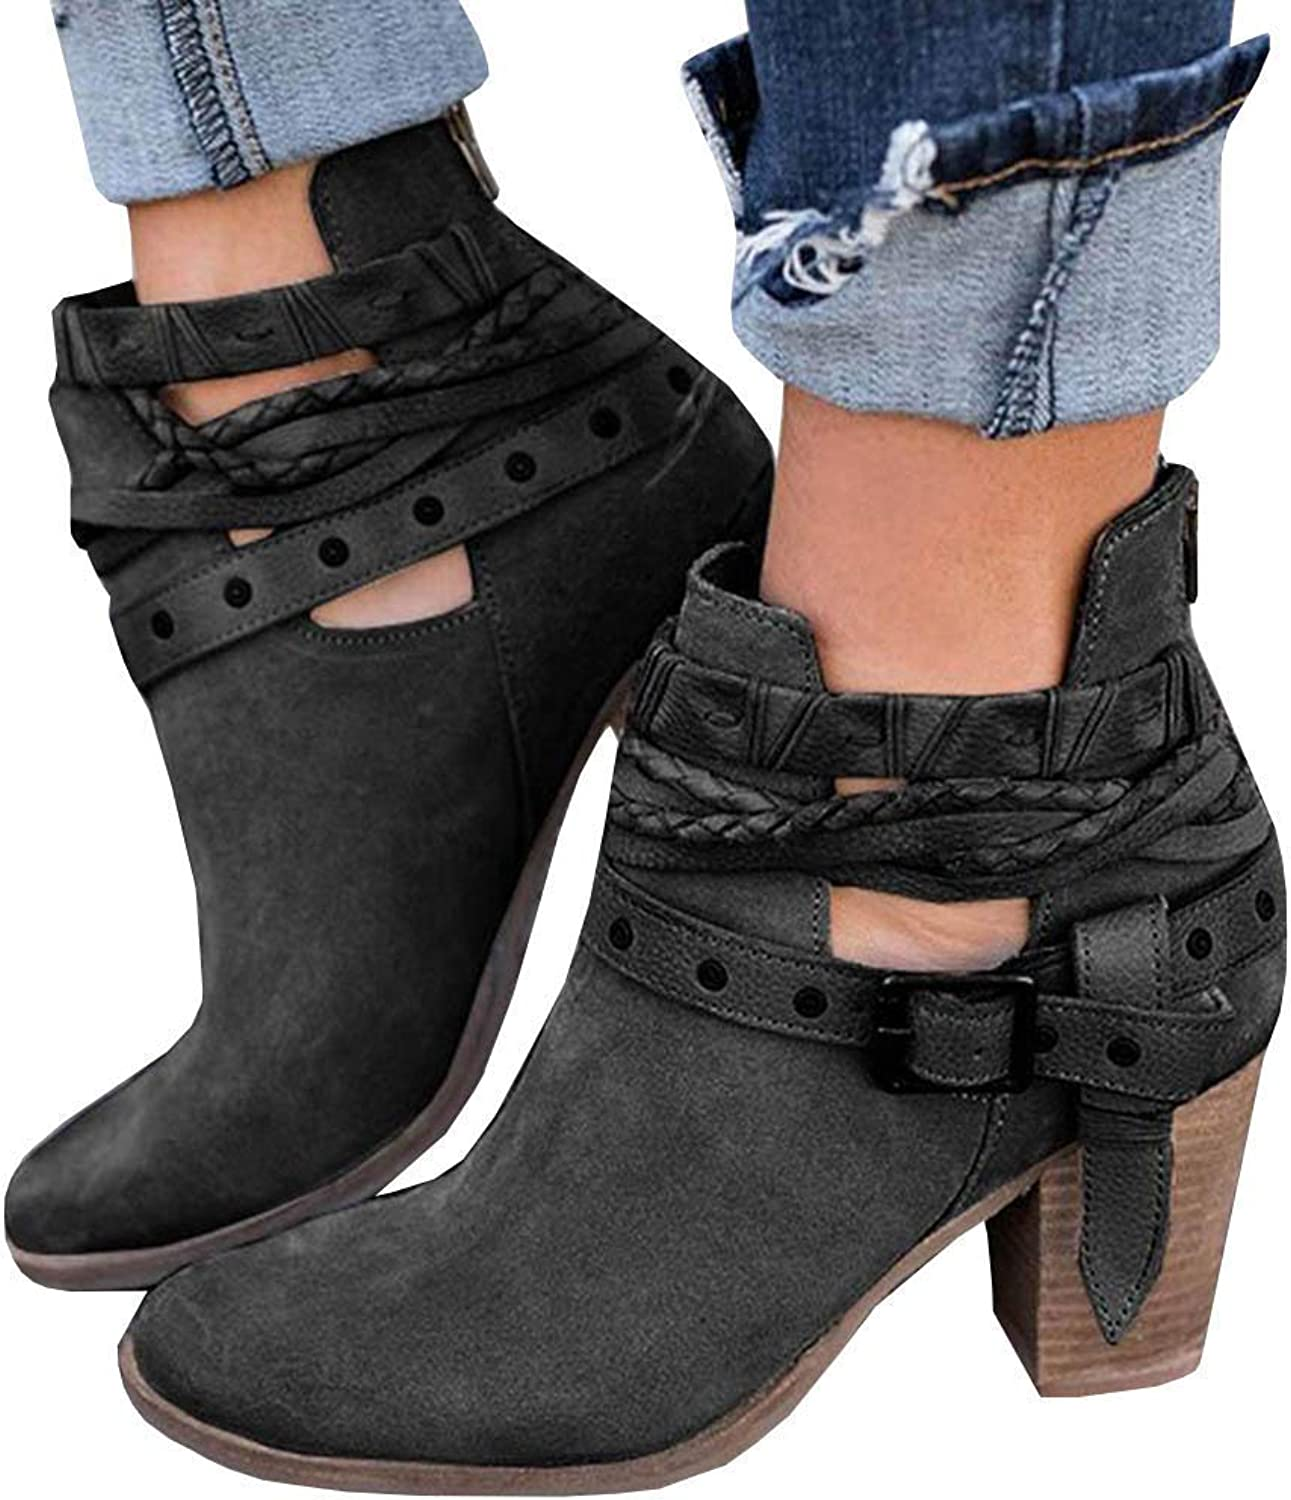 PRETTYHOMEL Womens Chunky Booties Cut Out Strappy High Stacked Block Heel Zip Up Ankle Boots